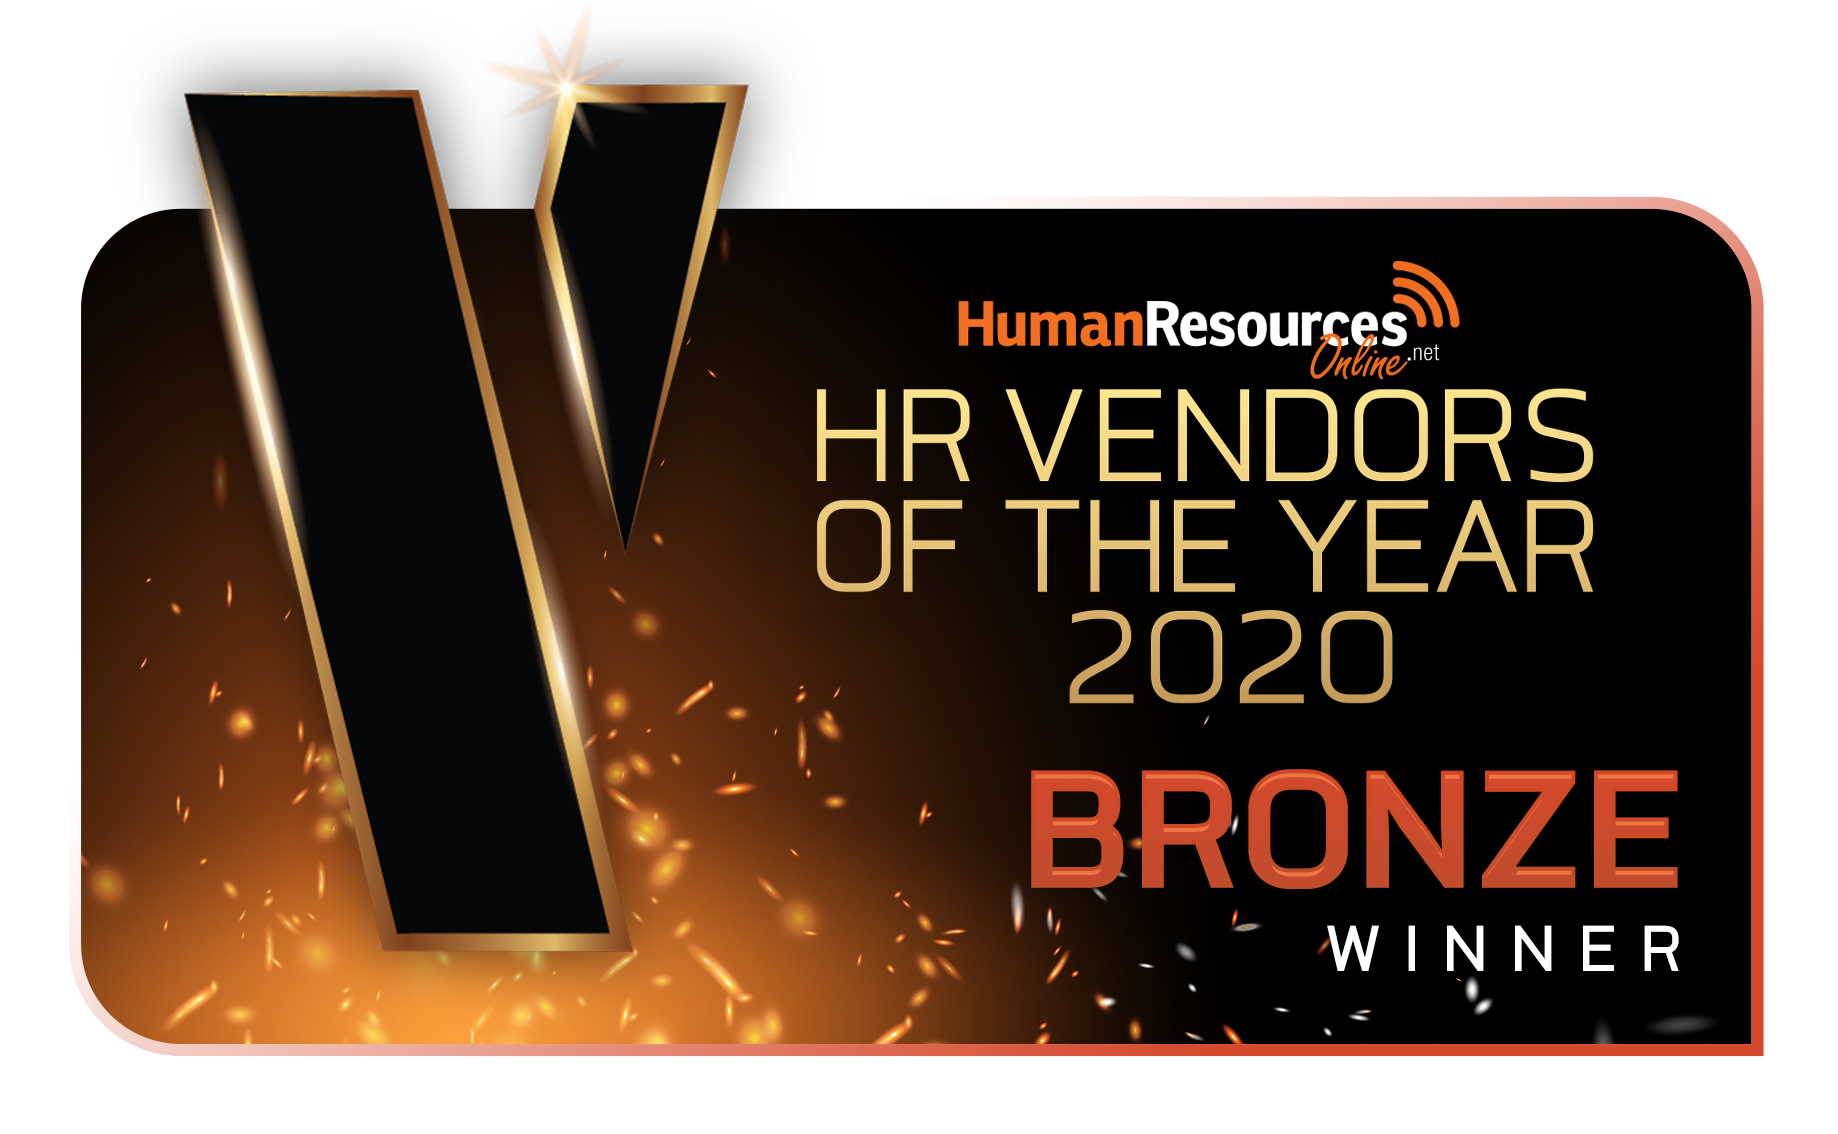 Another Bronze win for LLM – voted Best Executive Search firm 2020!